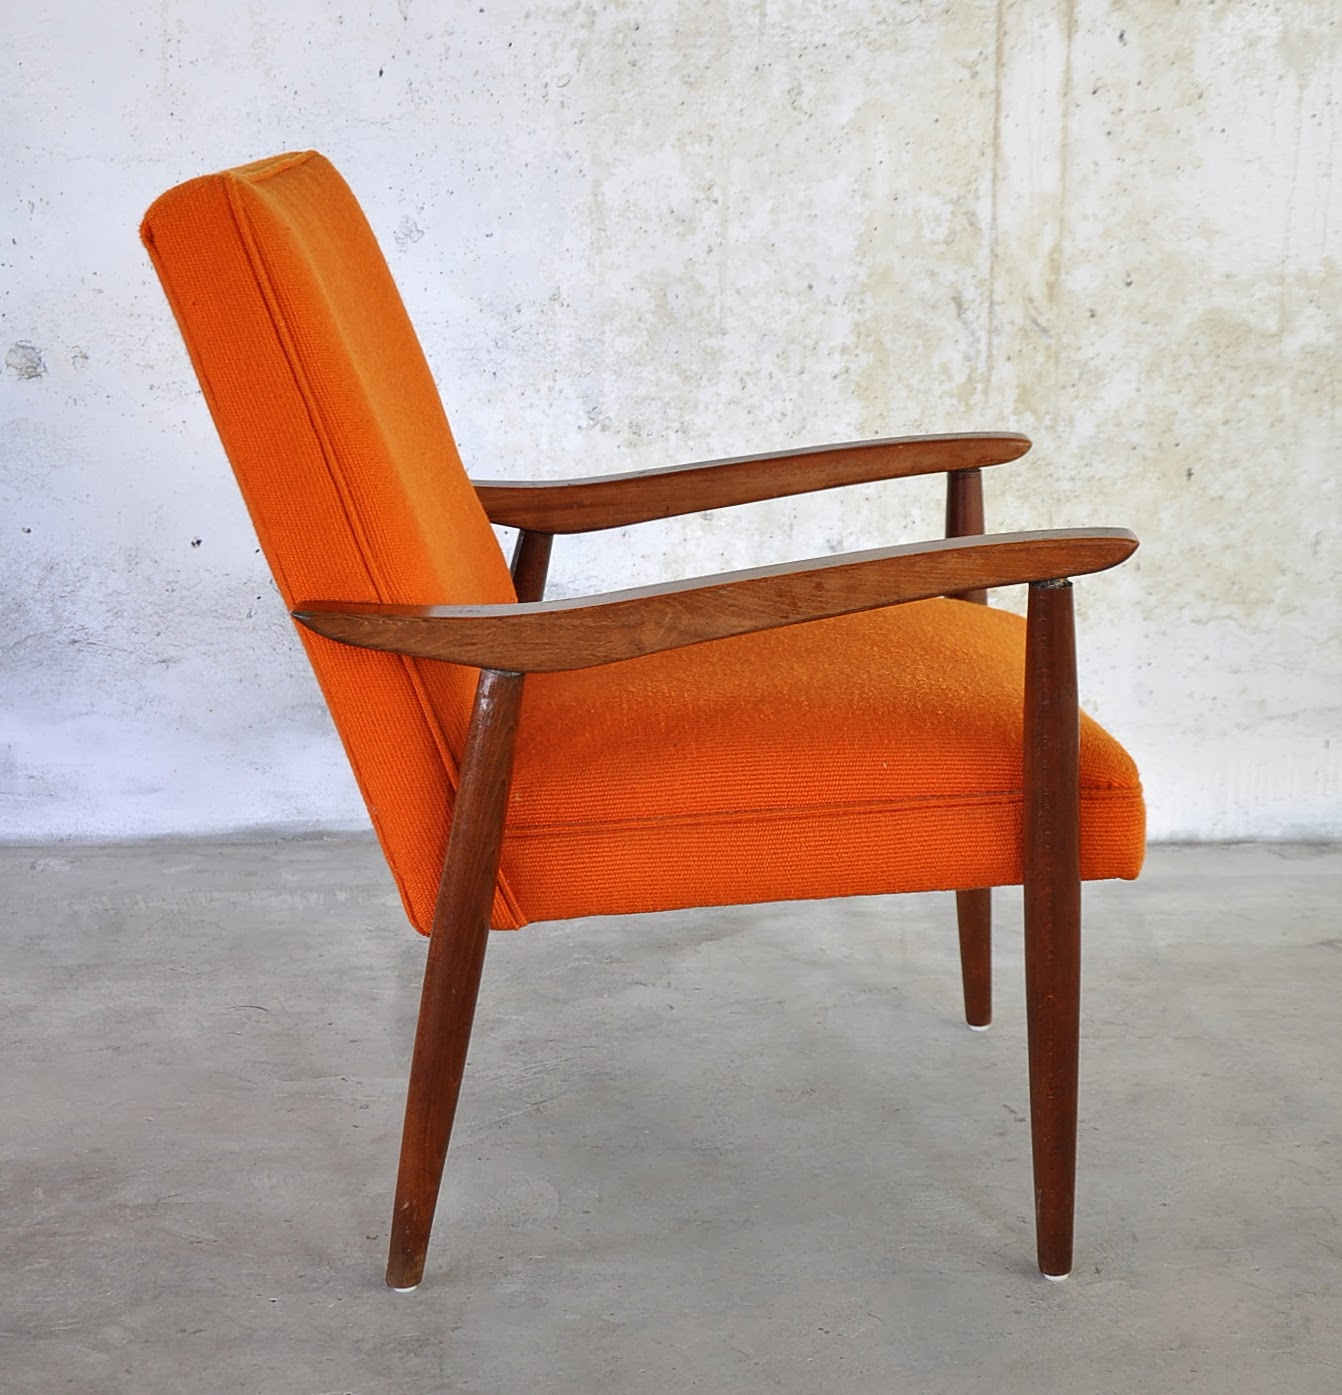 Image of: Modern Danish Lounge Chair Excellent